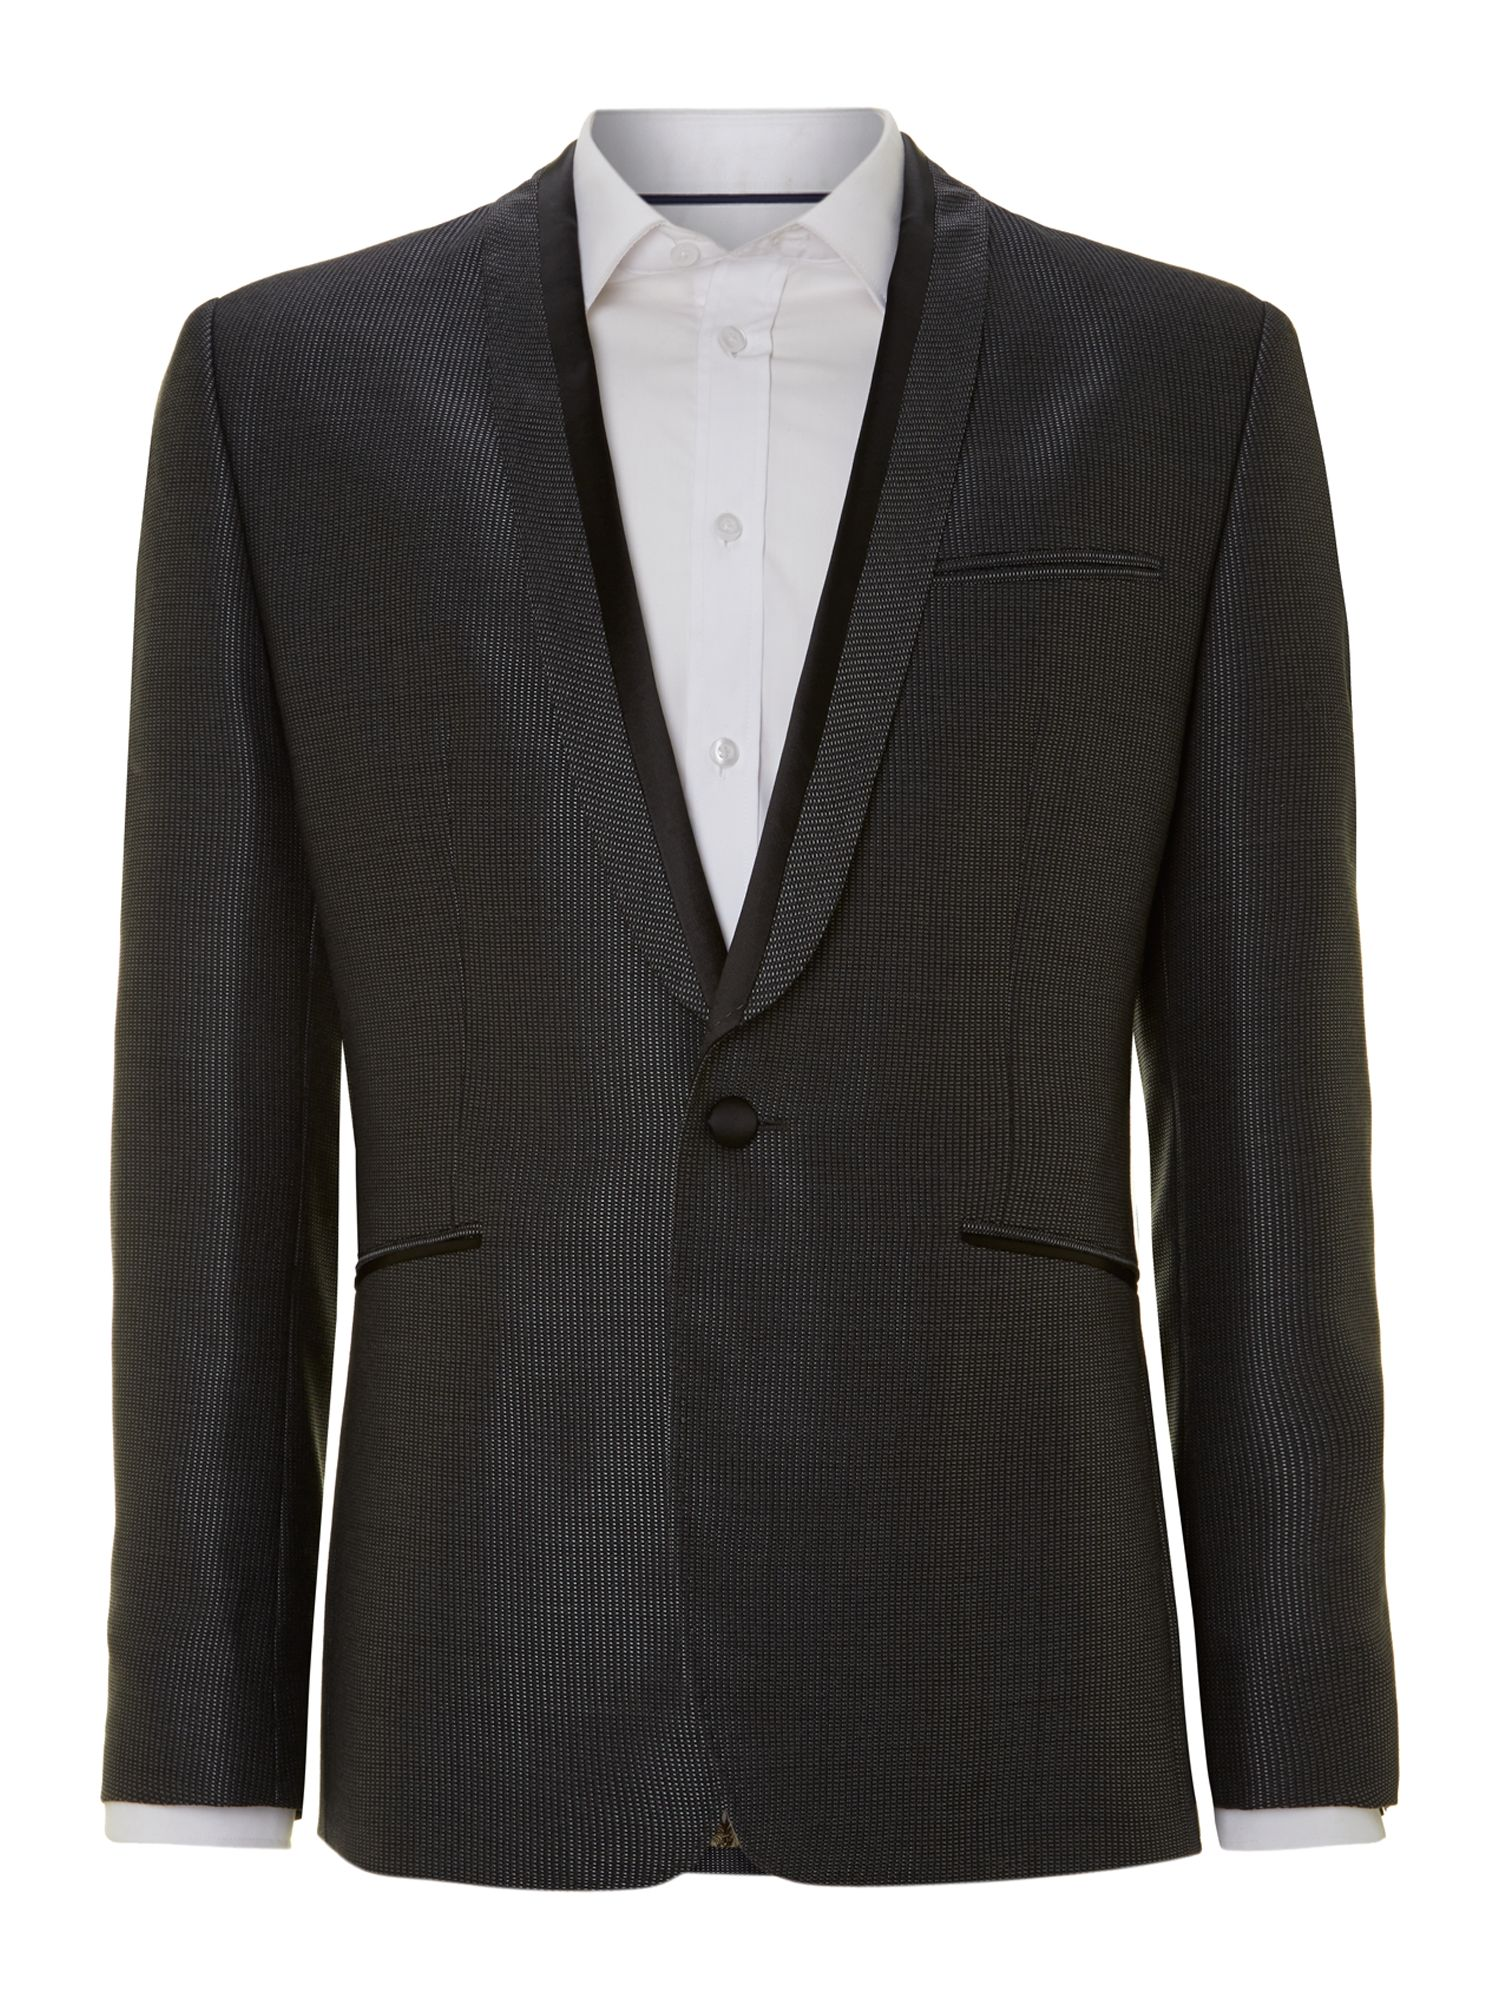 Flects pashion regular fit textured tux blazer